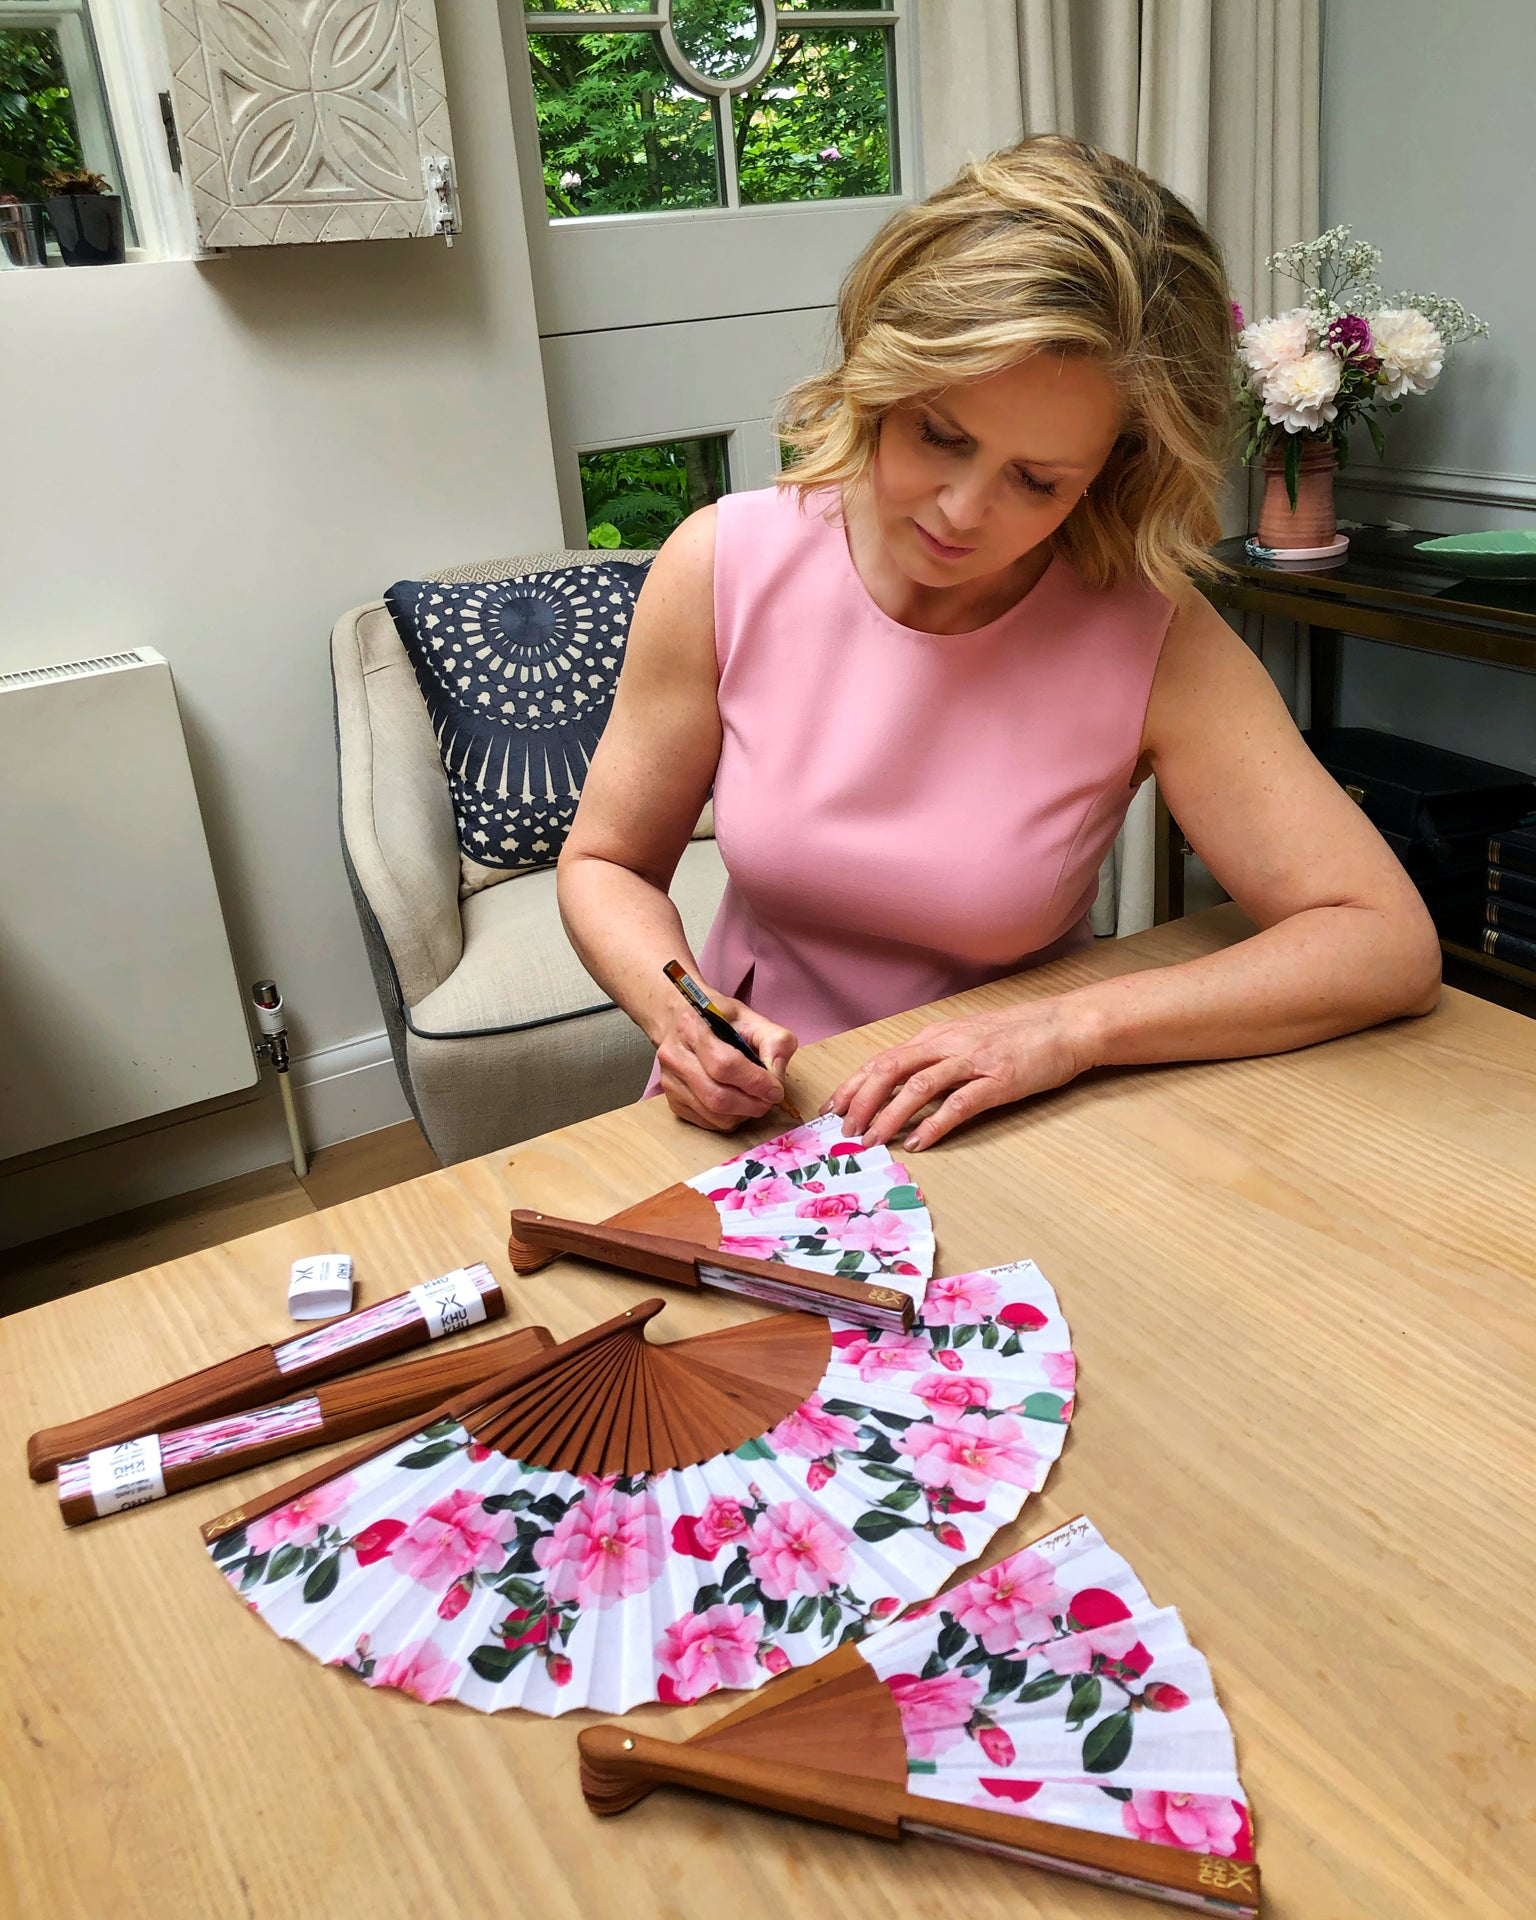 Liz Earle signing  Khu Khu Beautiful Cool Camellias Hand-Fan with collaboration print (Floral with pink and green spots and camellias.)